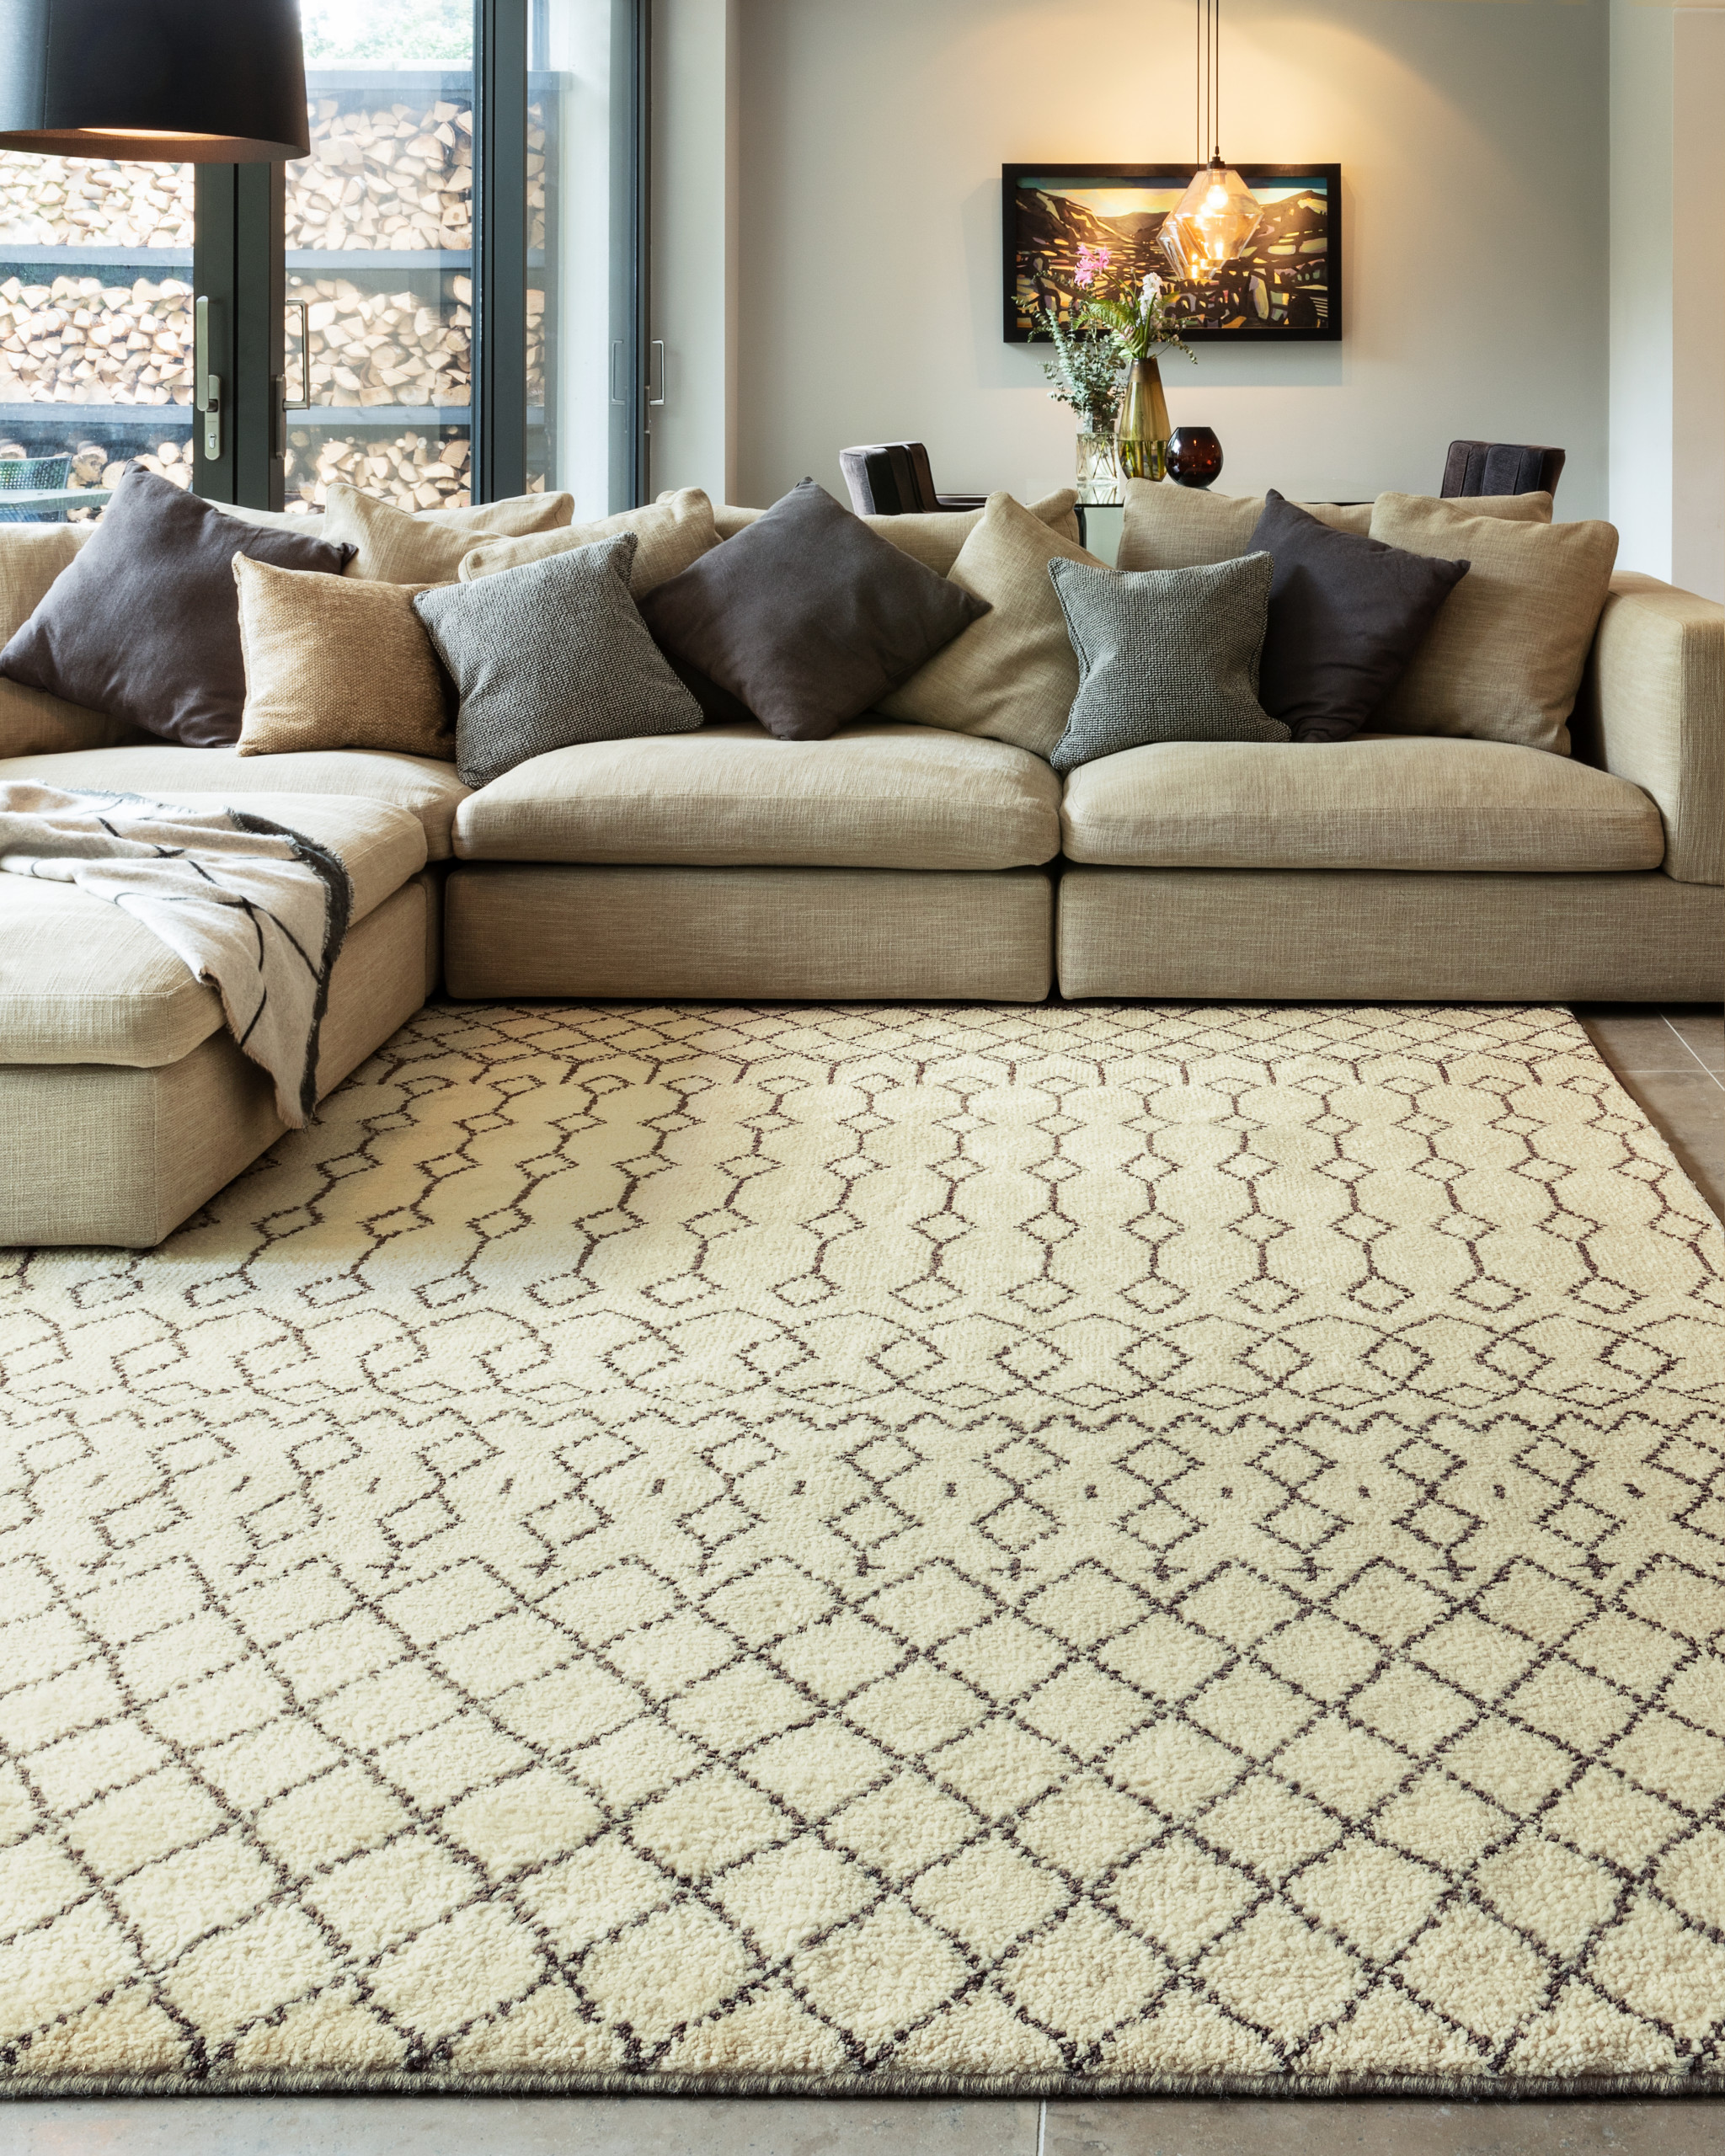 Amira 03 Rug - <p>Part of the Classica Heritage Collection, timeless oriental and Persians deisgns are refreshed for the present day. Classic looks and traditional crafts feature throughout for sophisticated style and long-lasting appearences. Amira is a hand-knotted rug with a Maroccan Berber look, washed for a softer feel. Avaiable in different sizes.</p>  | Matter of Stuff